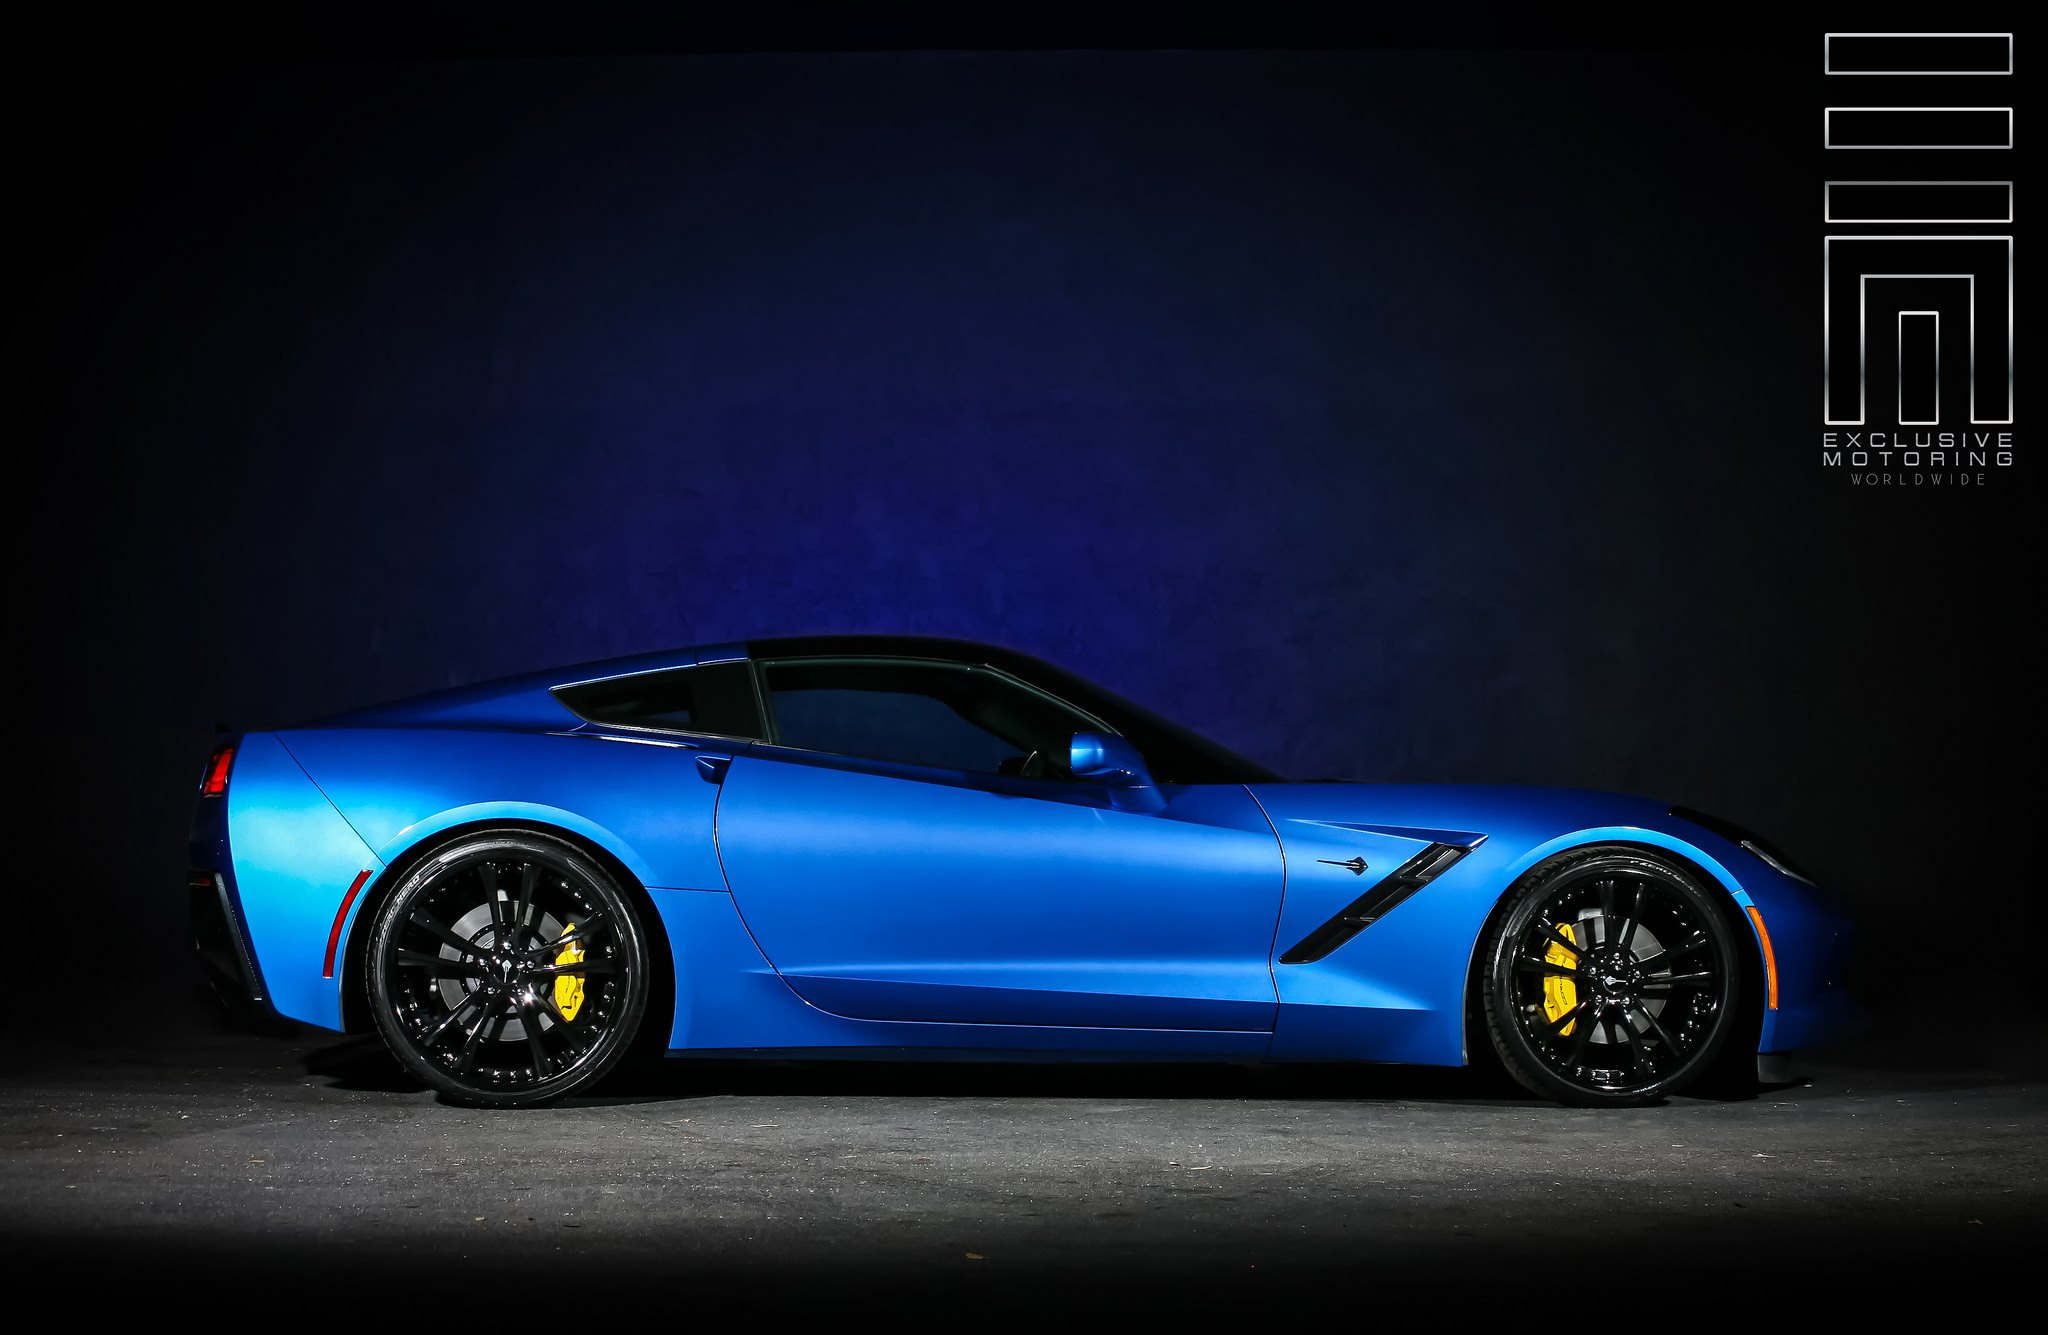 Electric Blue Corvette C7 Side View Photo By Exclusive Motoring